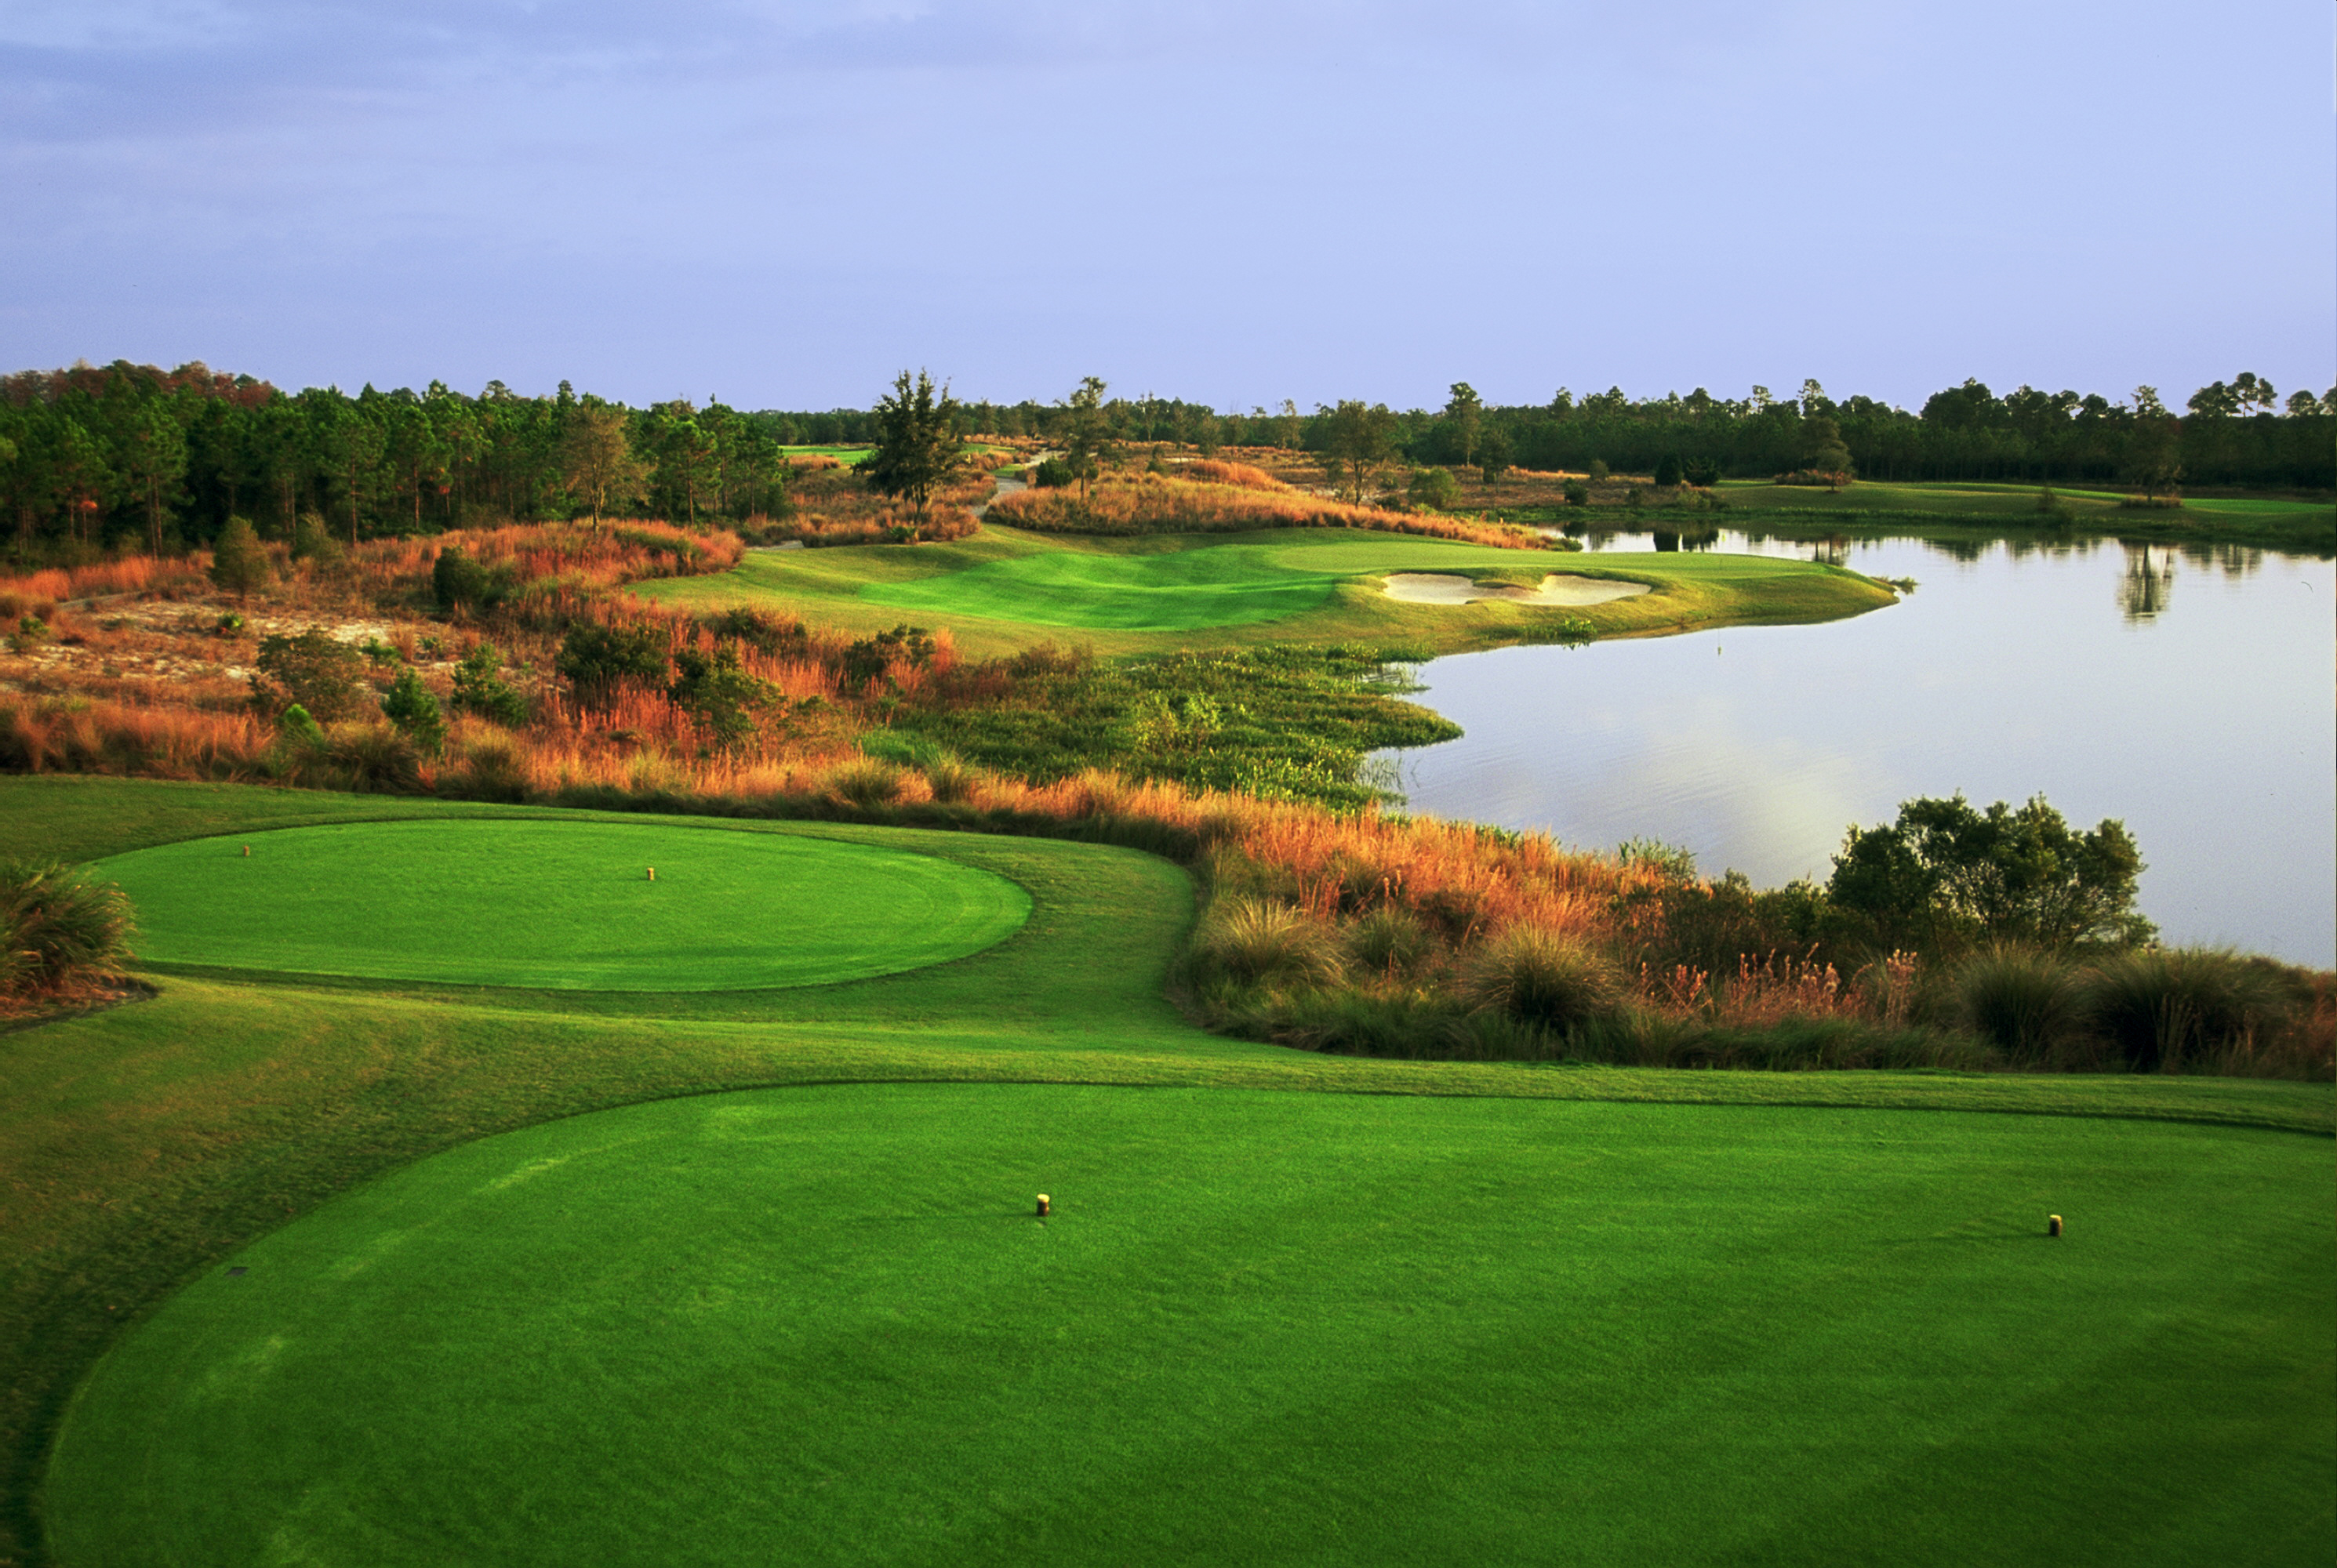 View of the Camp Creek course at WaterColor Inn.